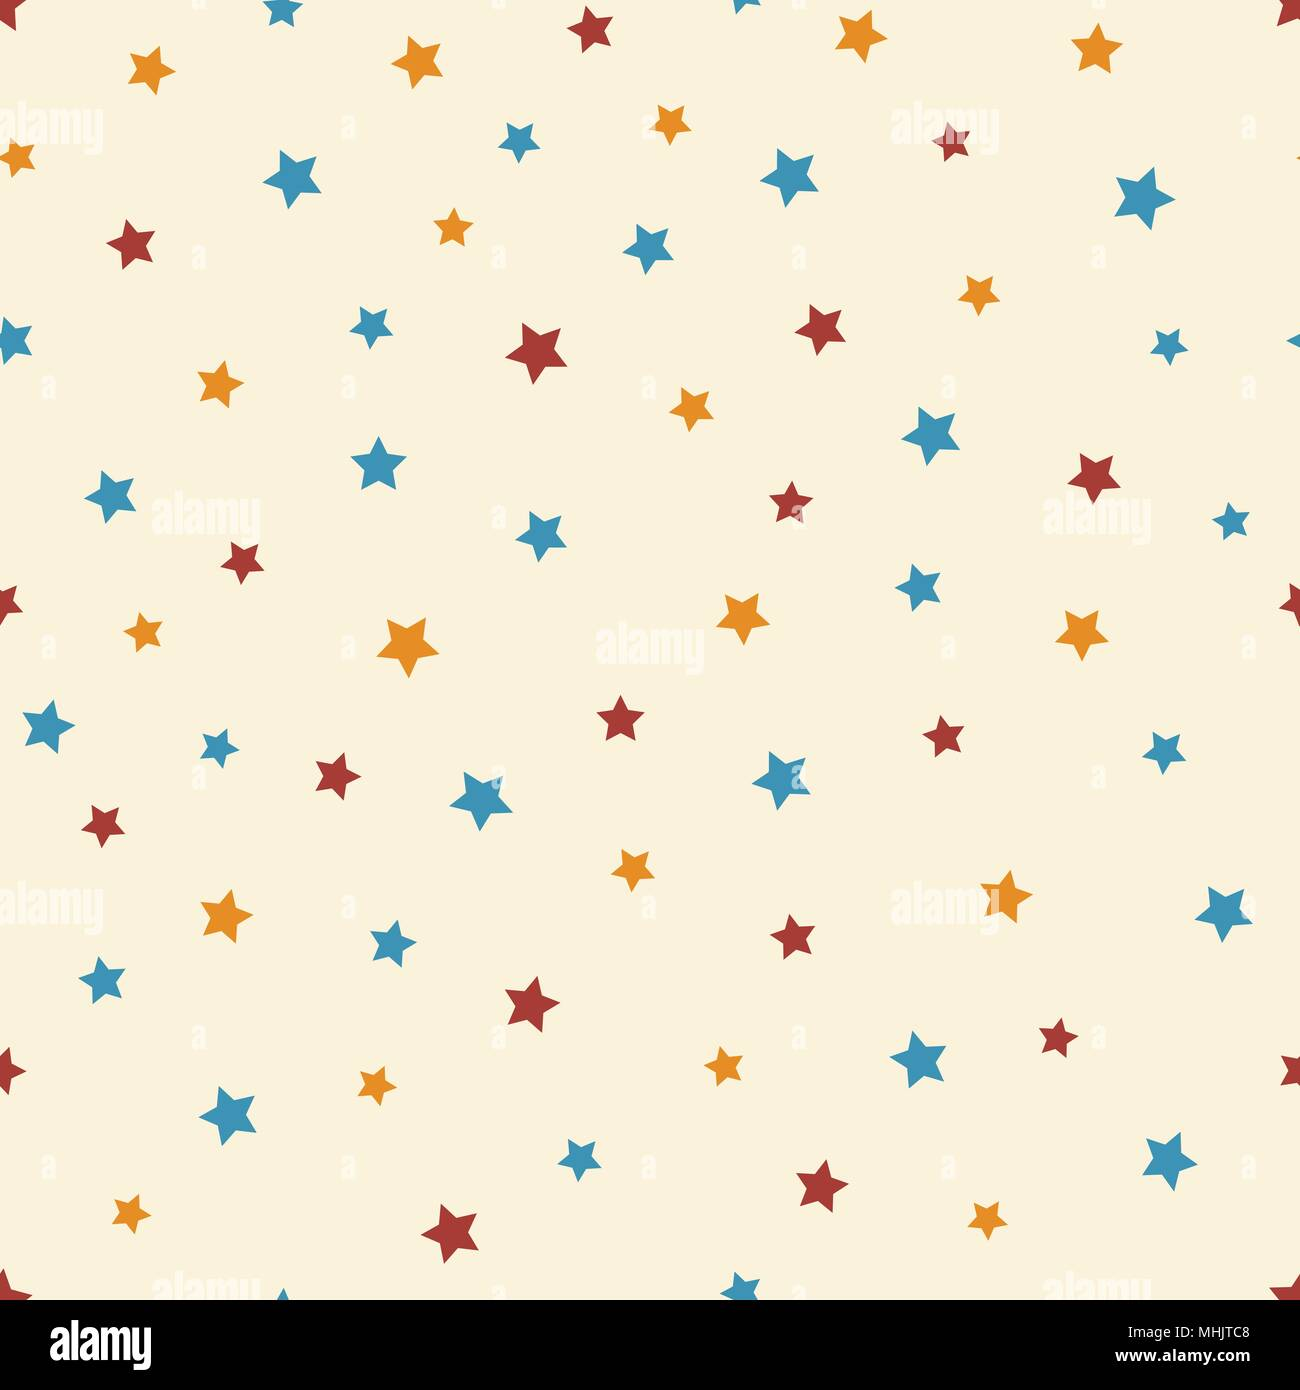 59b35b72b65b Vector abstract starry seamless pattern on the beige background. Cute blue